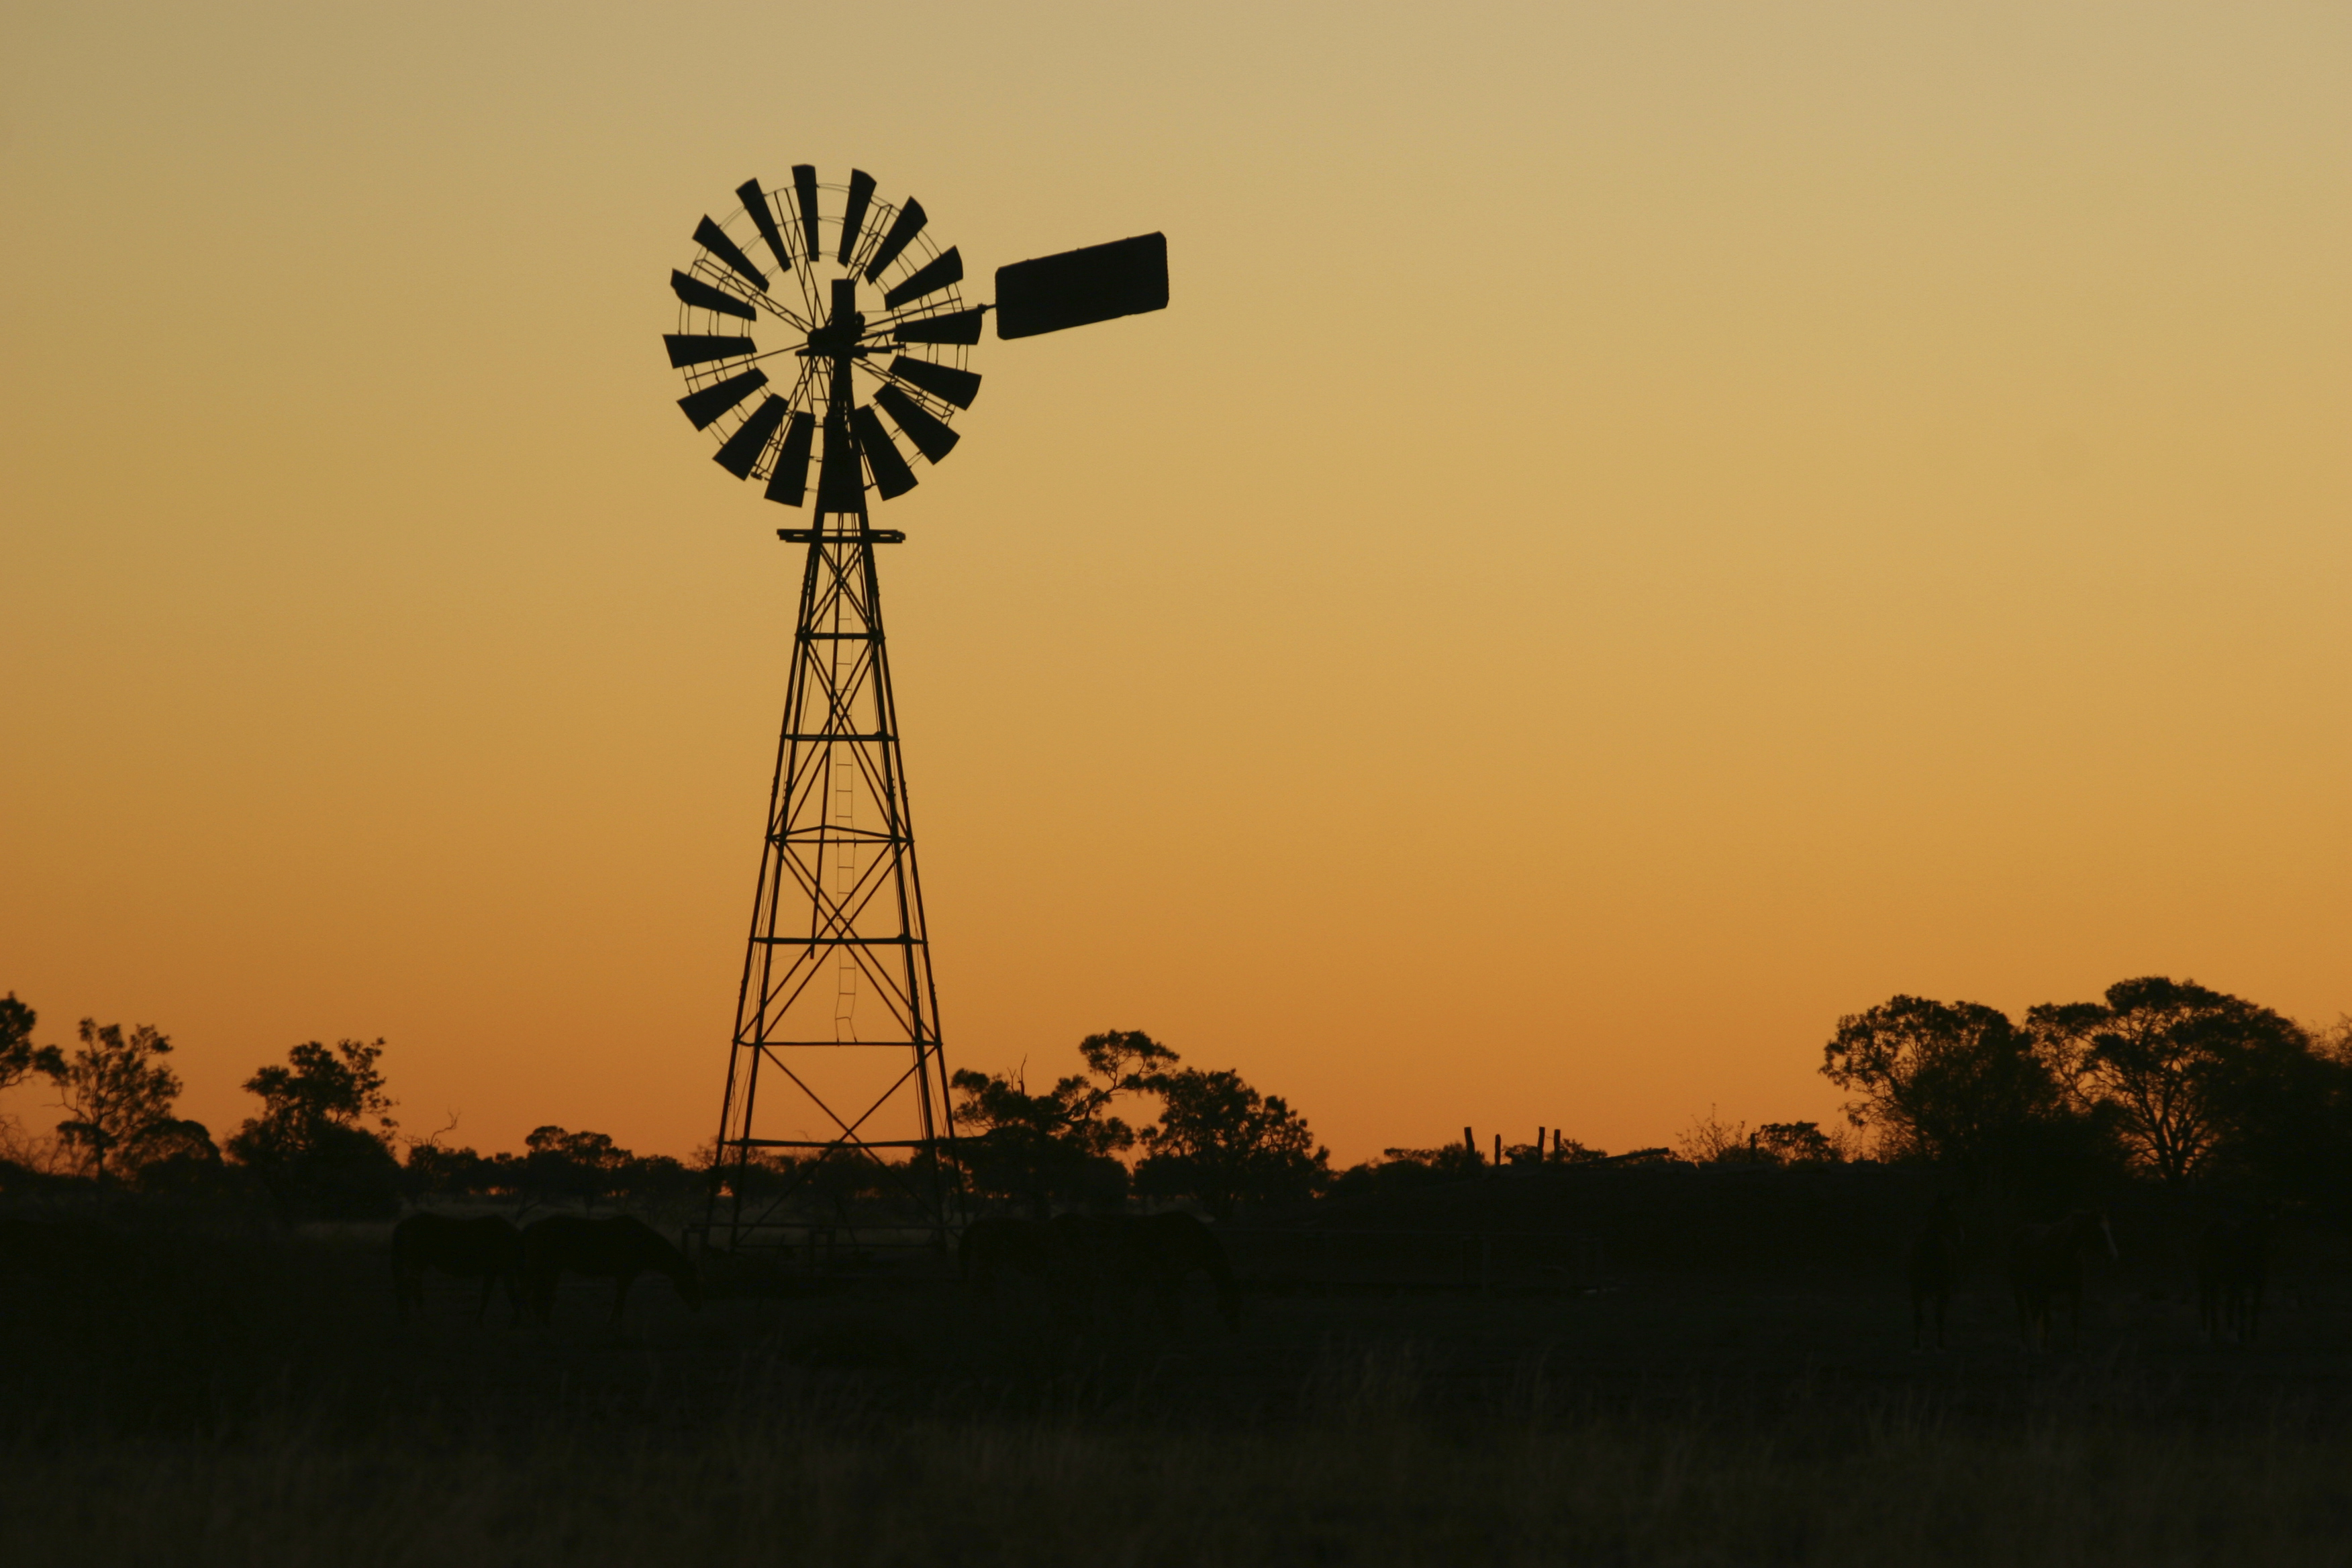 Large windmill at sunset